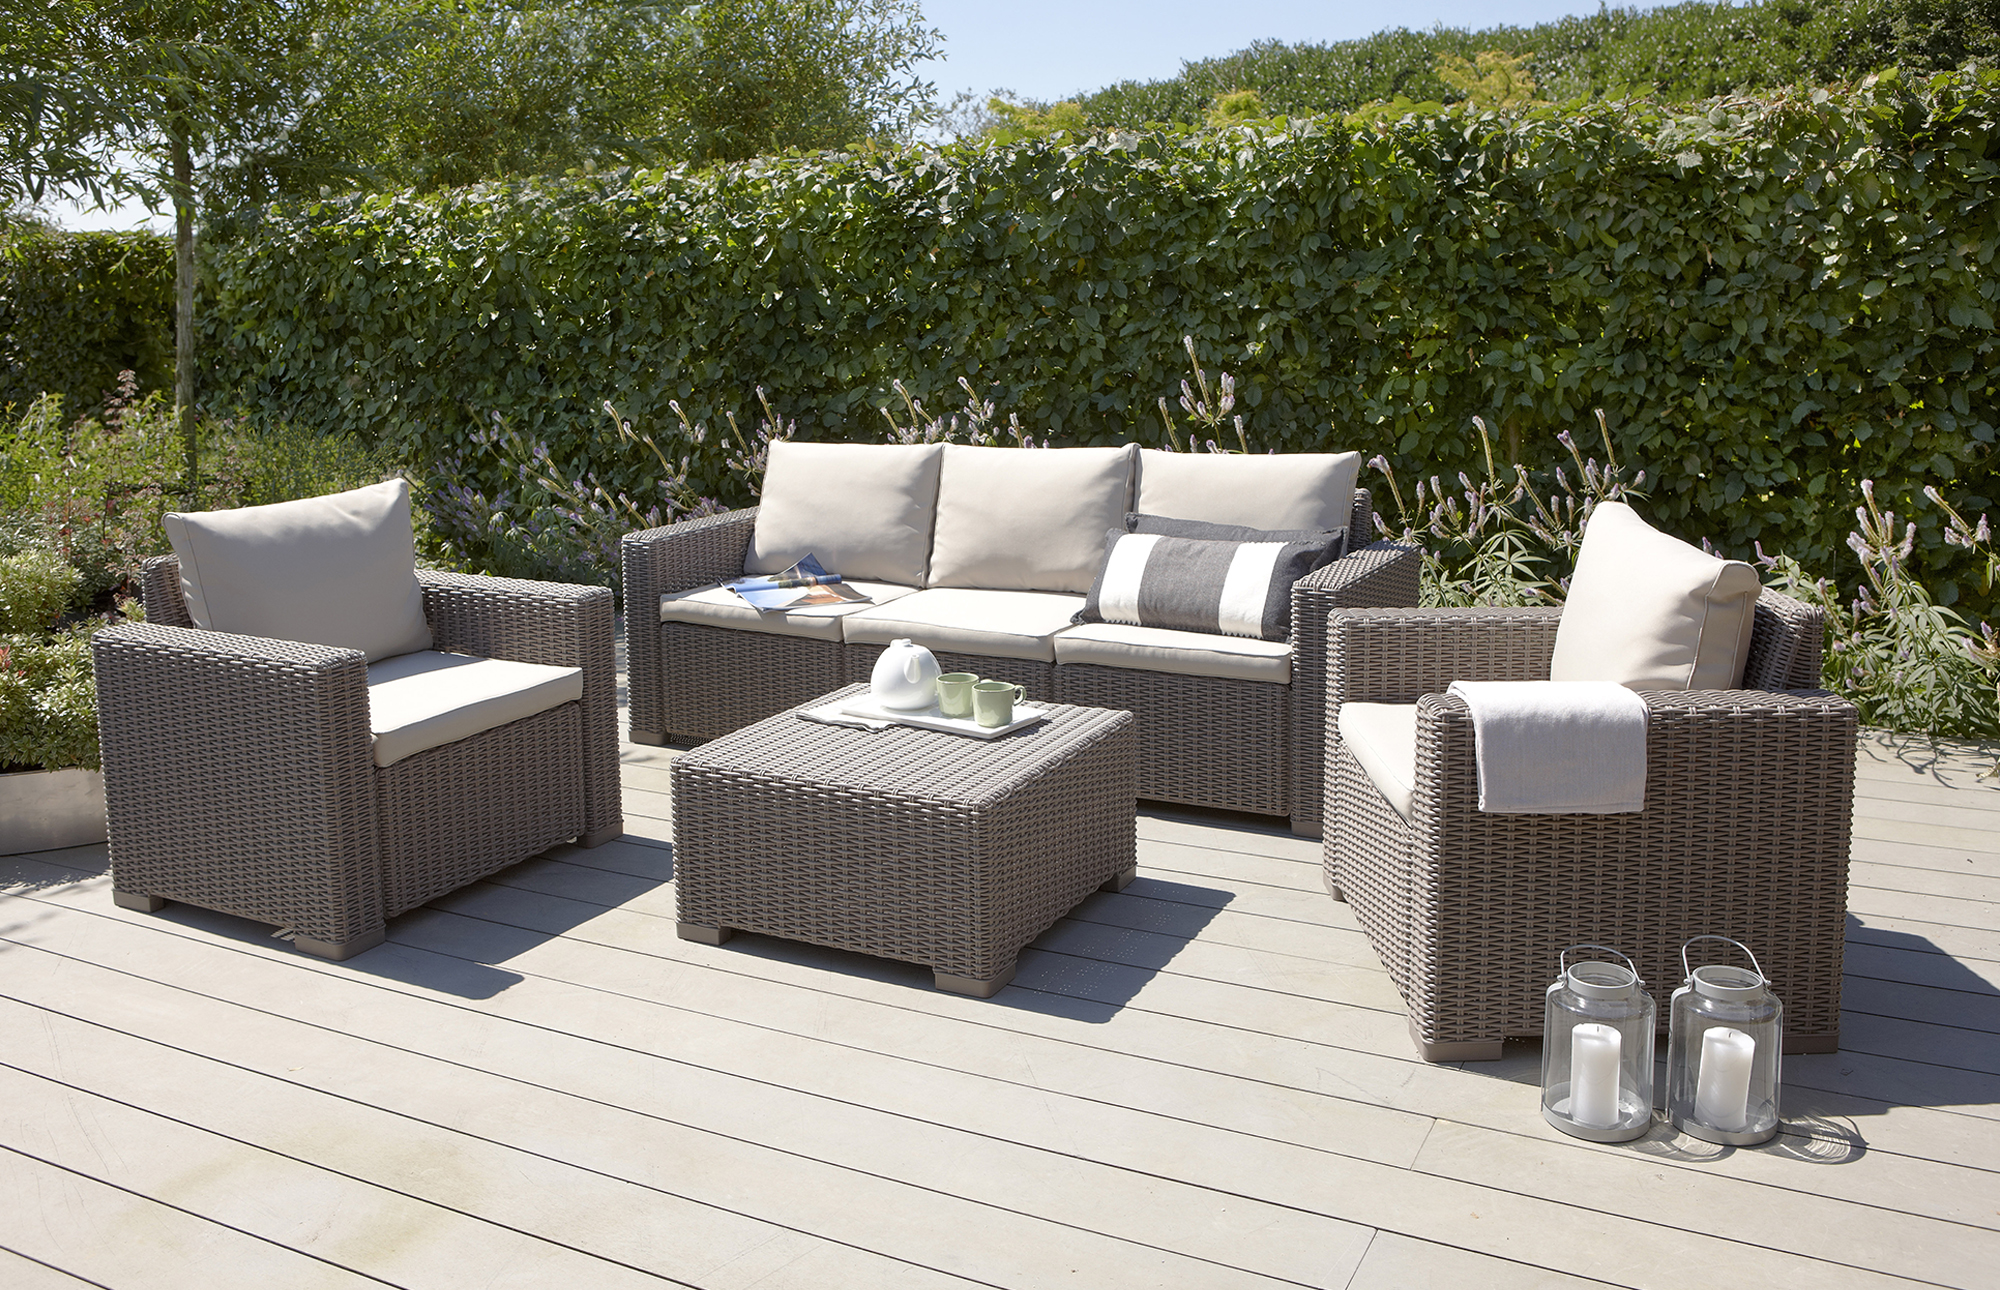 outdoor garden furniture garden-furniture-rattan-sets-breathtaking-rattan-garden-furniture -bistro-sets-breathtaking-outdoor-patio-furniture-covers - rattan garden  furniture sets ... GDIDXTM